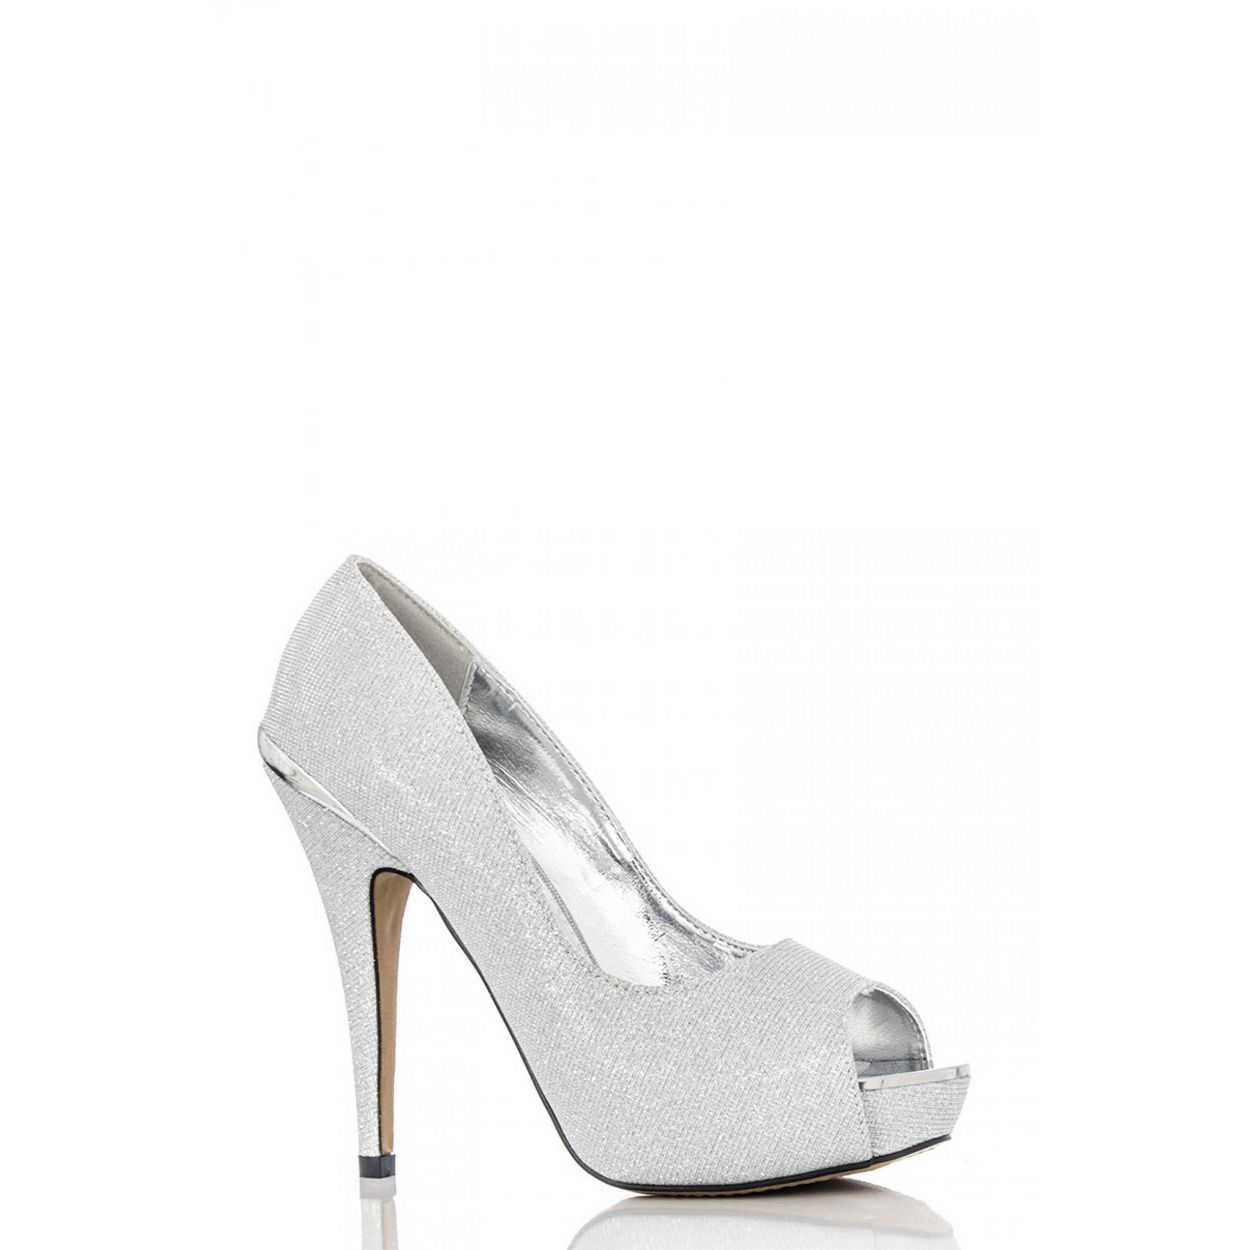 Quiz Silver shimmer platform shoes- at Debenhams.com